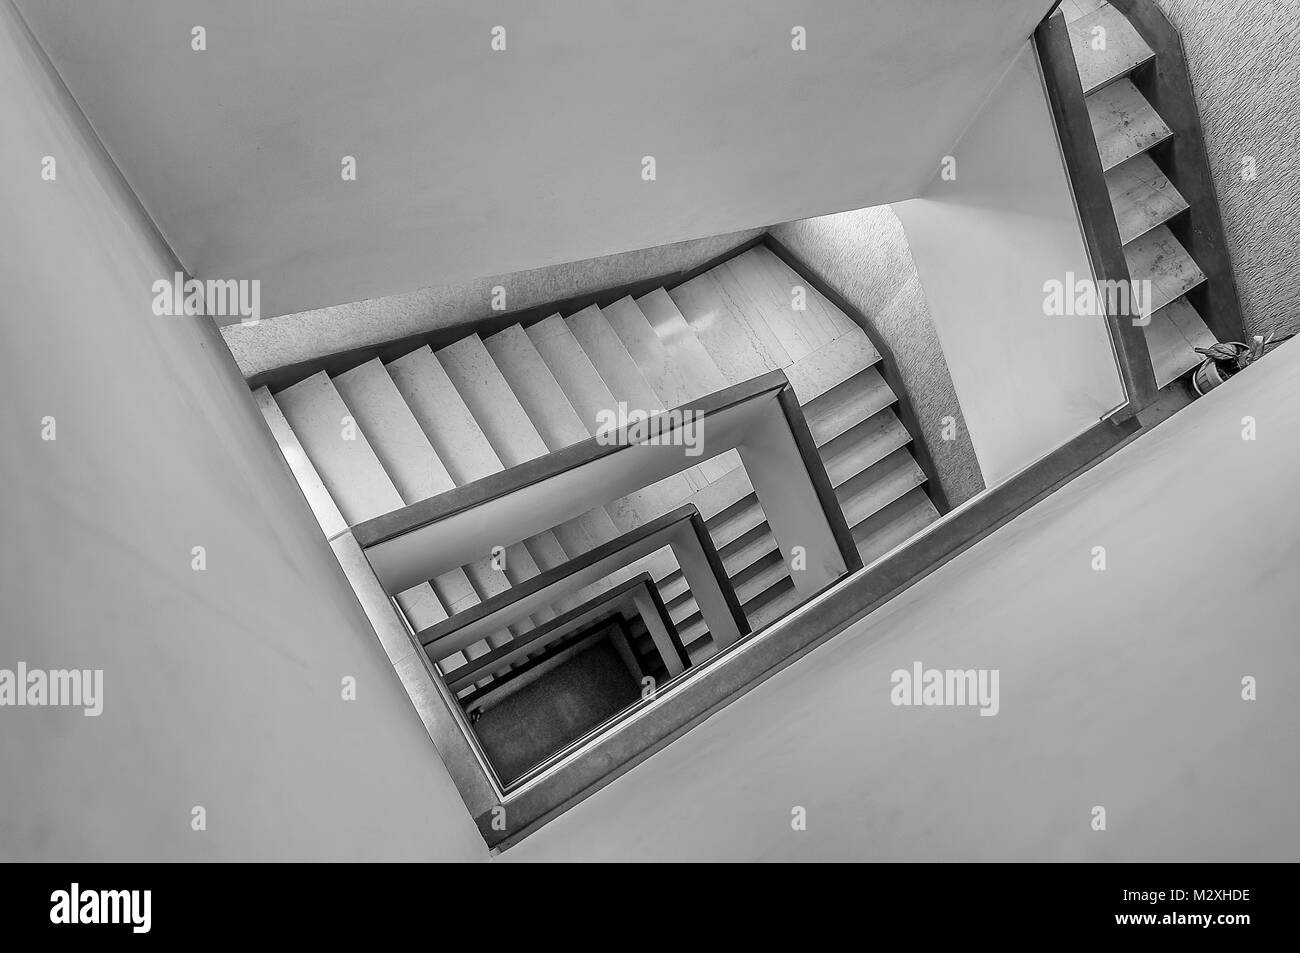 Top view of the stairwell in masonry and marble, floors seen from the stairs - Stock Image